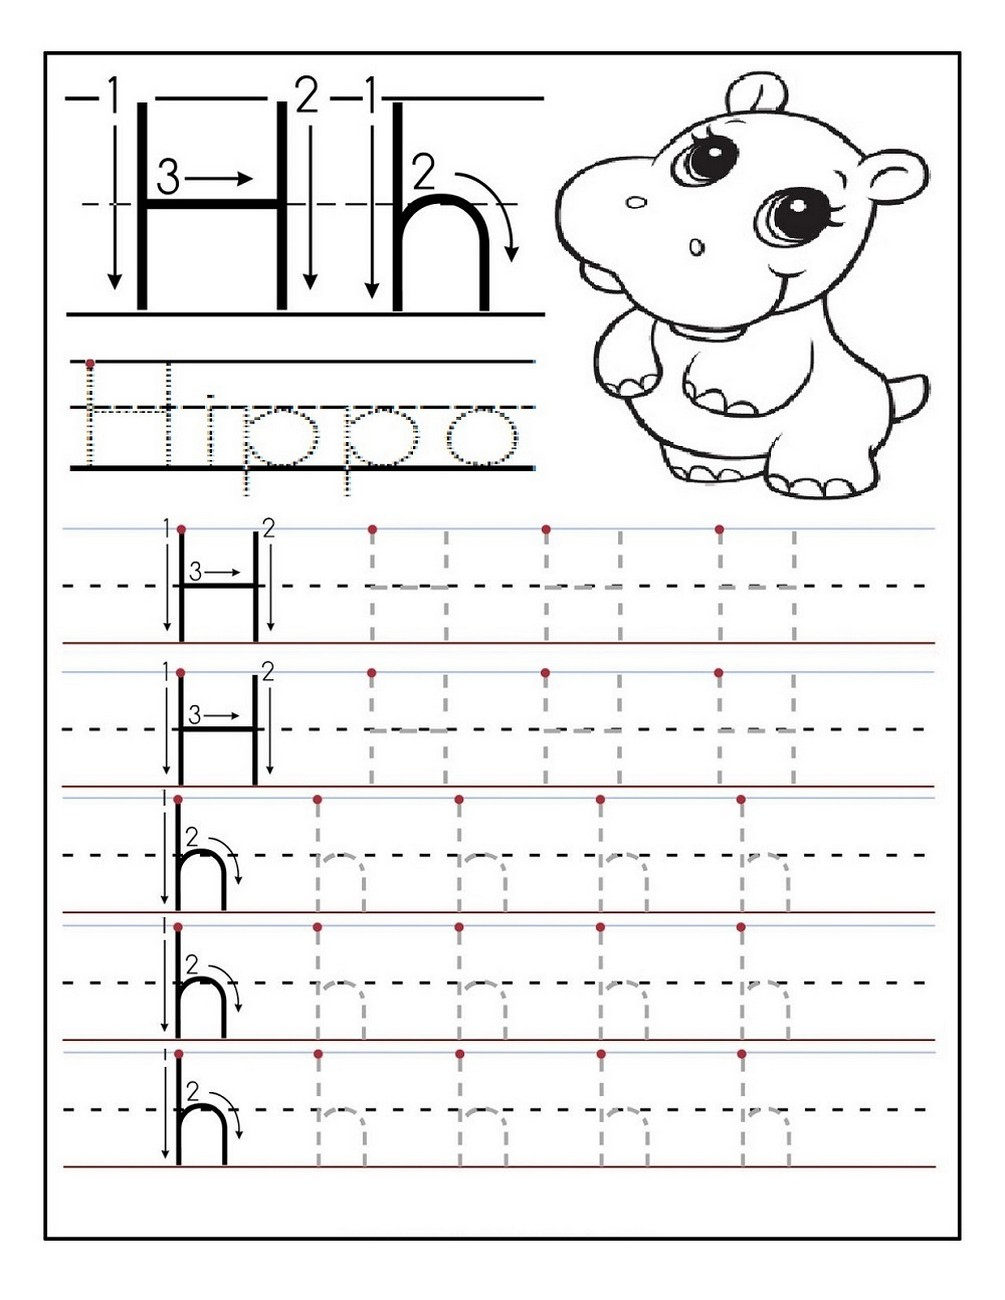 worksheet Kindergarten Tracing Worksheets kindergarten letter tracing worksheets learning printable sheet